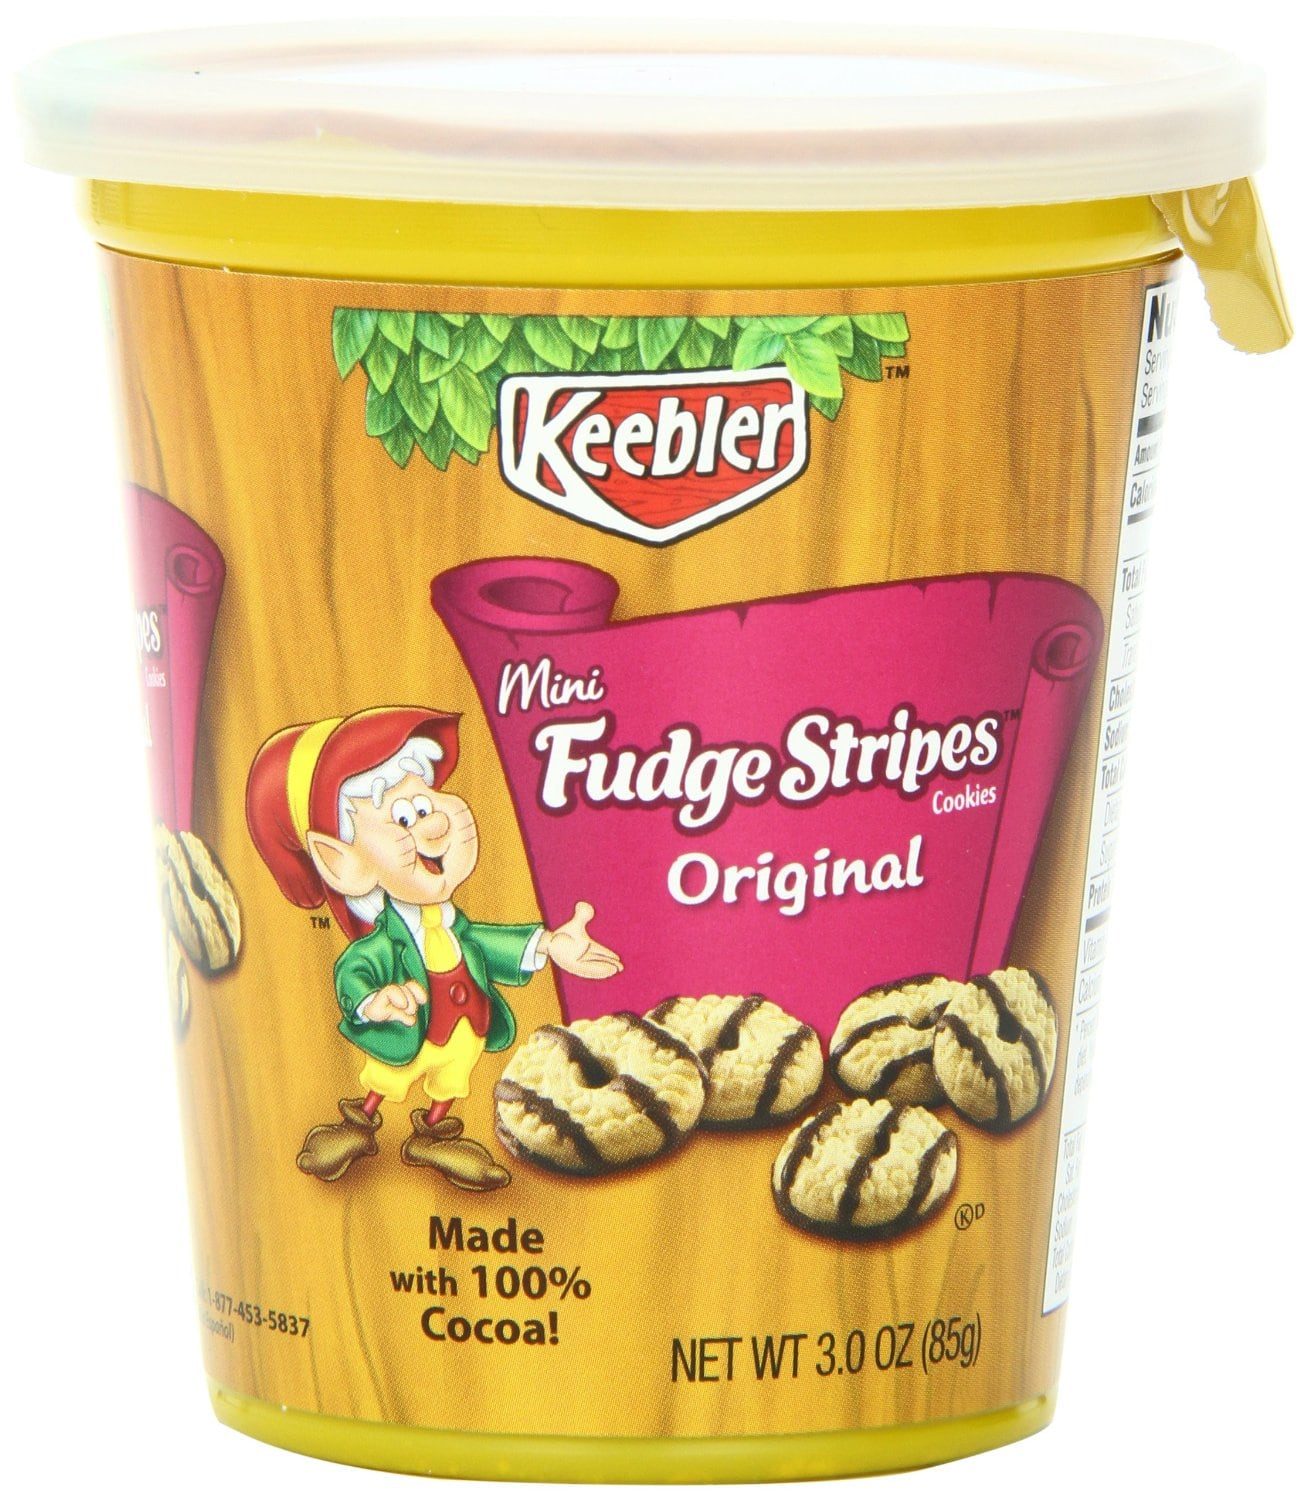 Keebler Fudge Stripes Cups (Pack of 10) - As Low As $6 - Amazon S&S